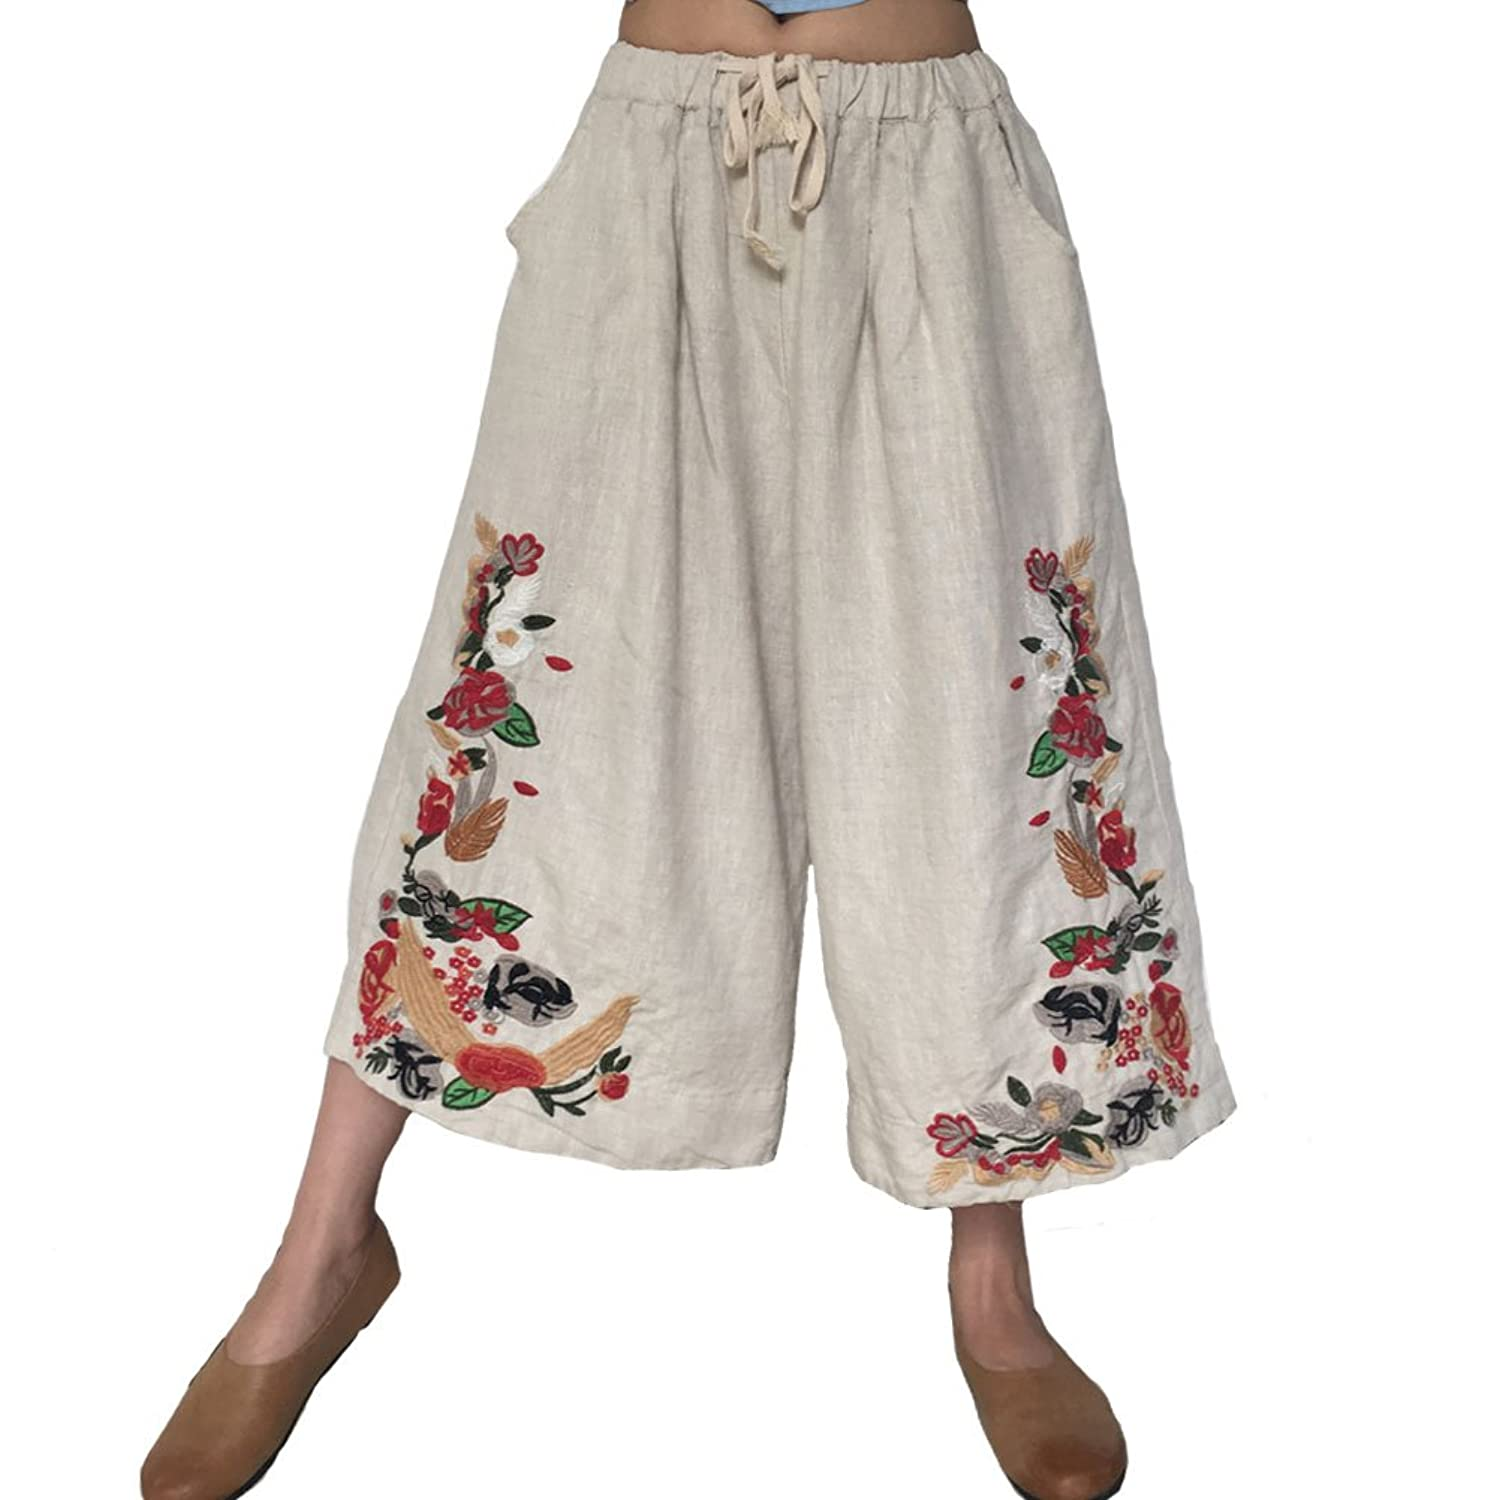 Aeneontrue Women's Casual 100% Linen Wide Leg Pants With Floral Embroidery Cropped Trousers With Elastic Waist